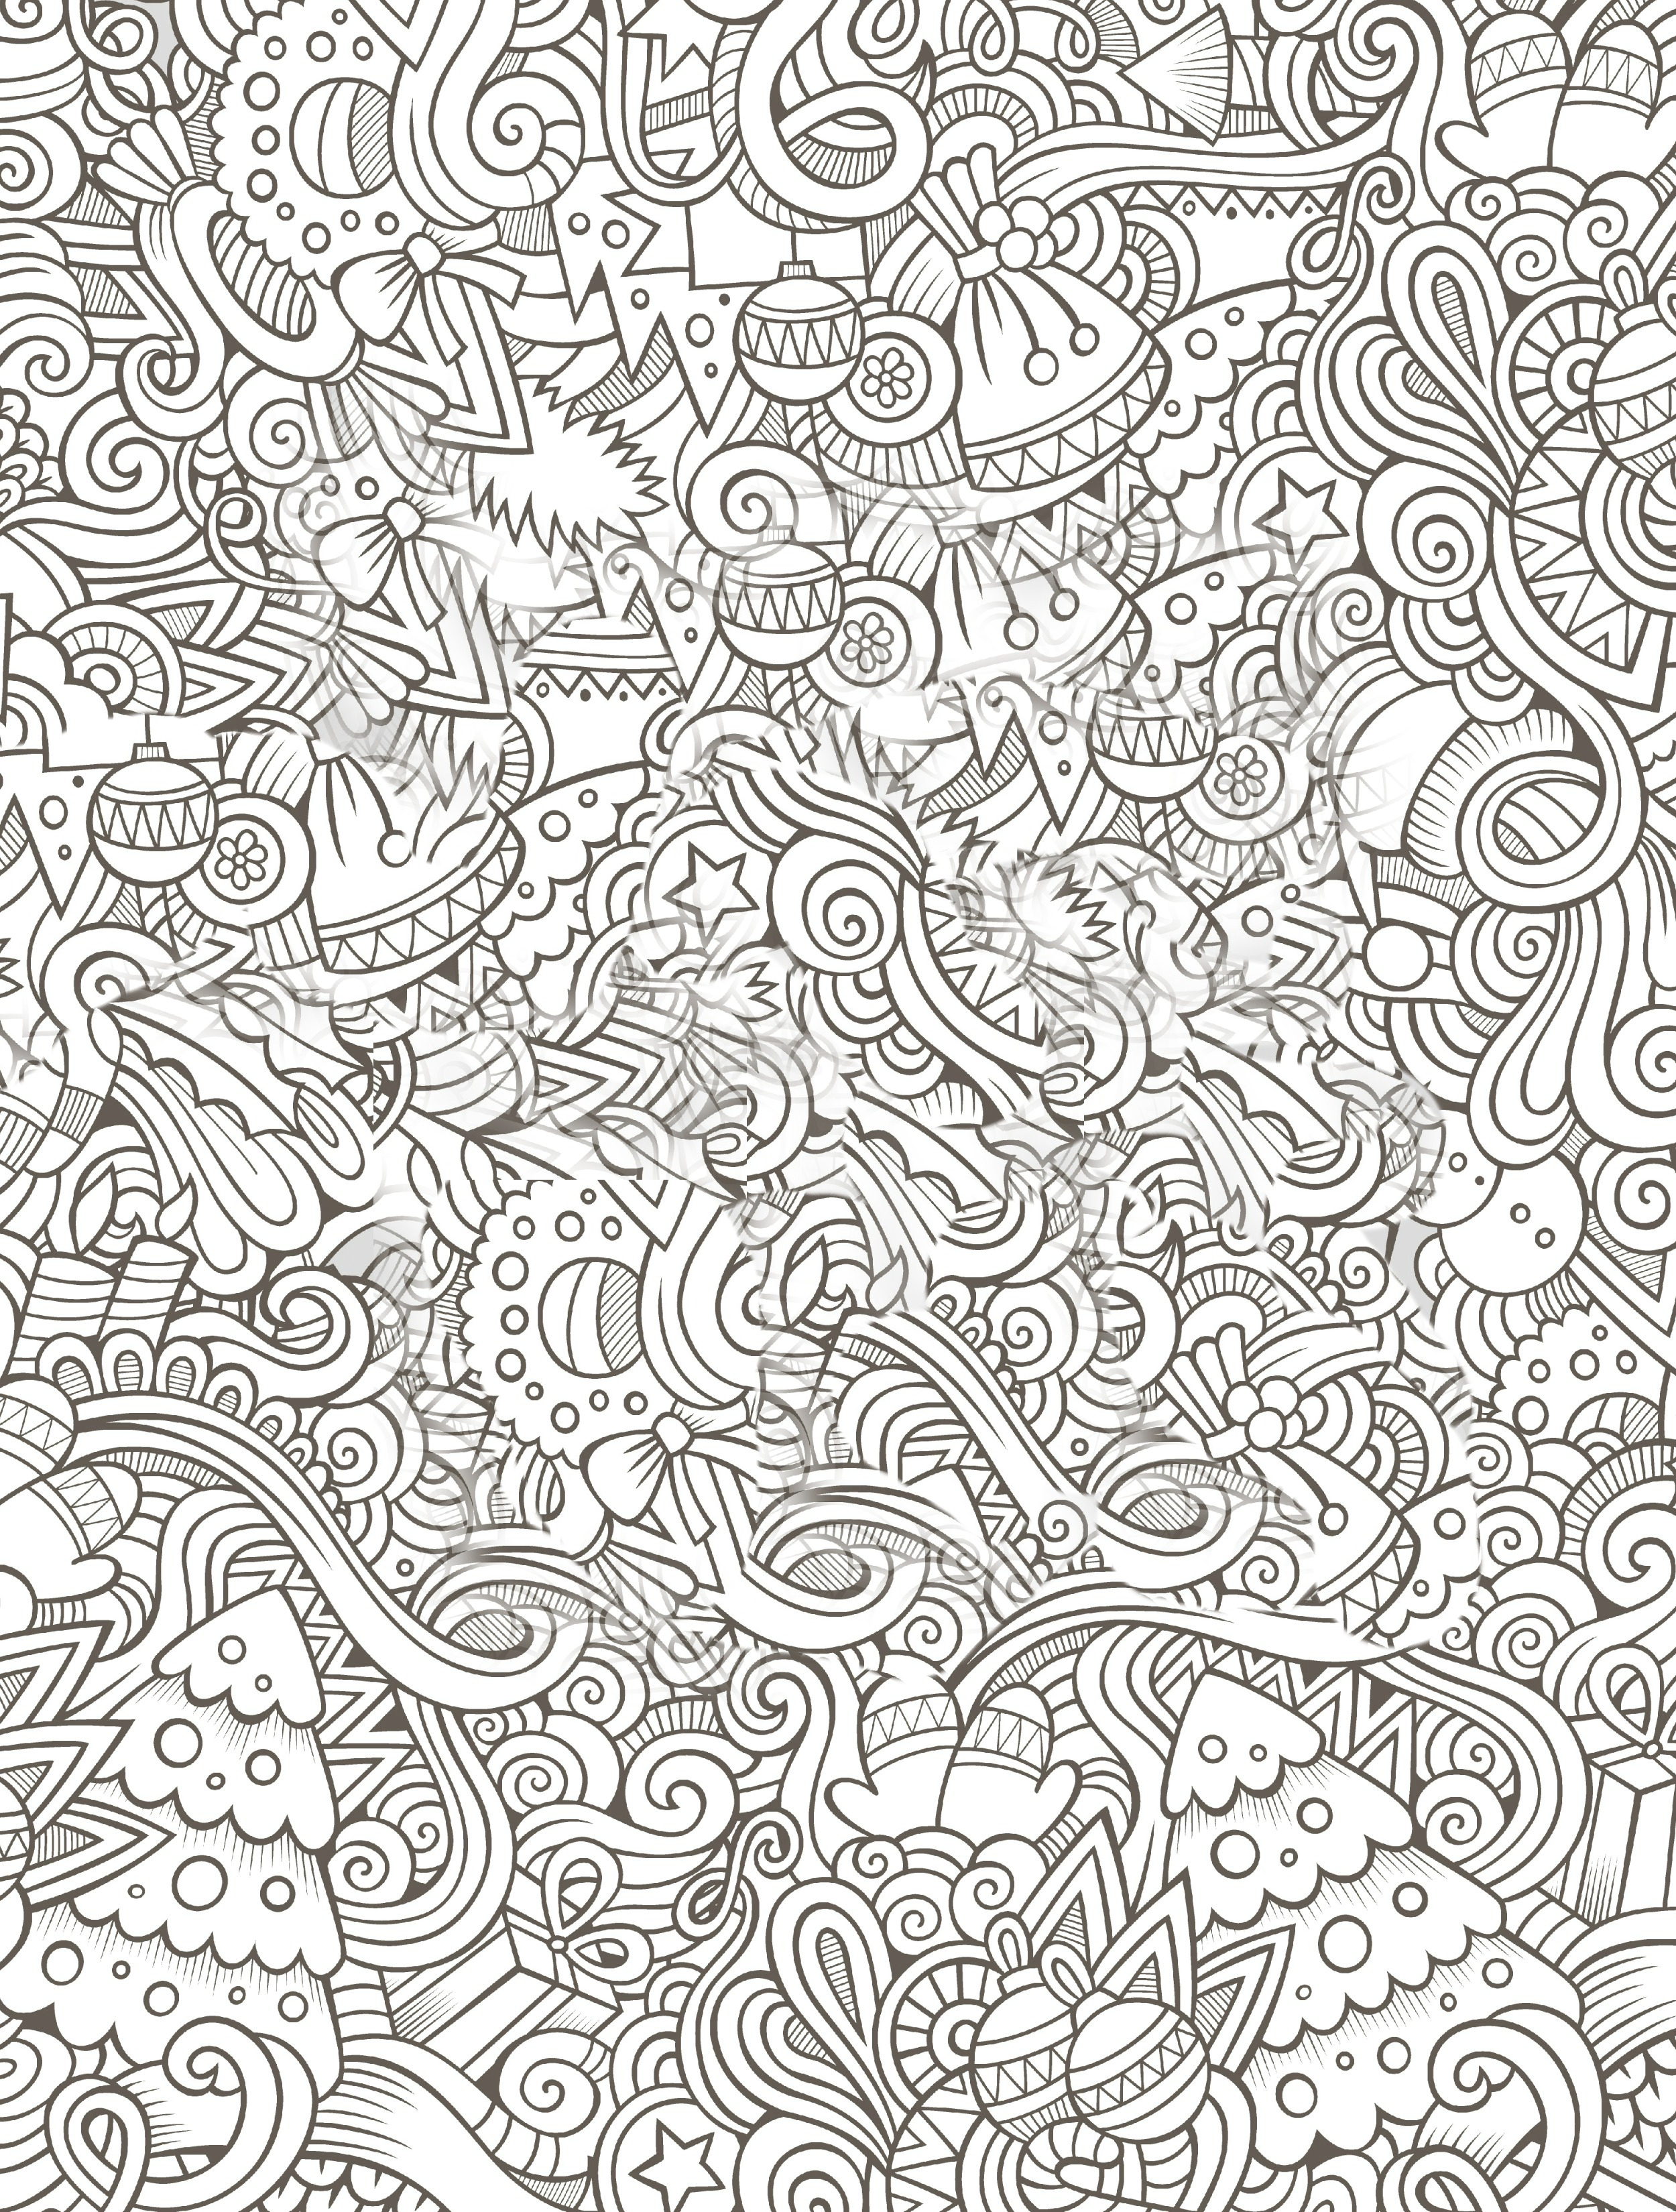 Coloring Pages : Free Printable Holiday Adult Coloring Pages Books - Free Printable Coloring Books For Adults